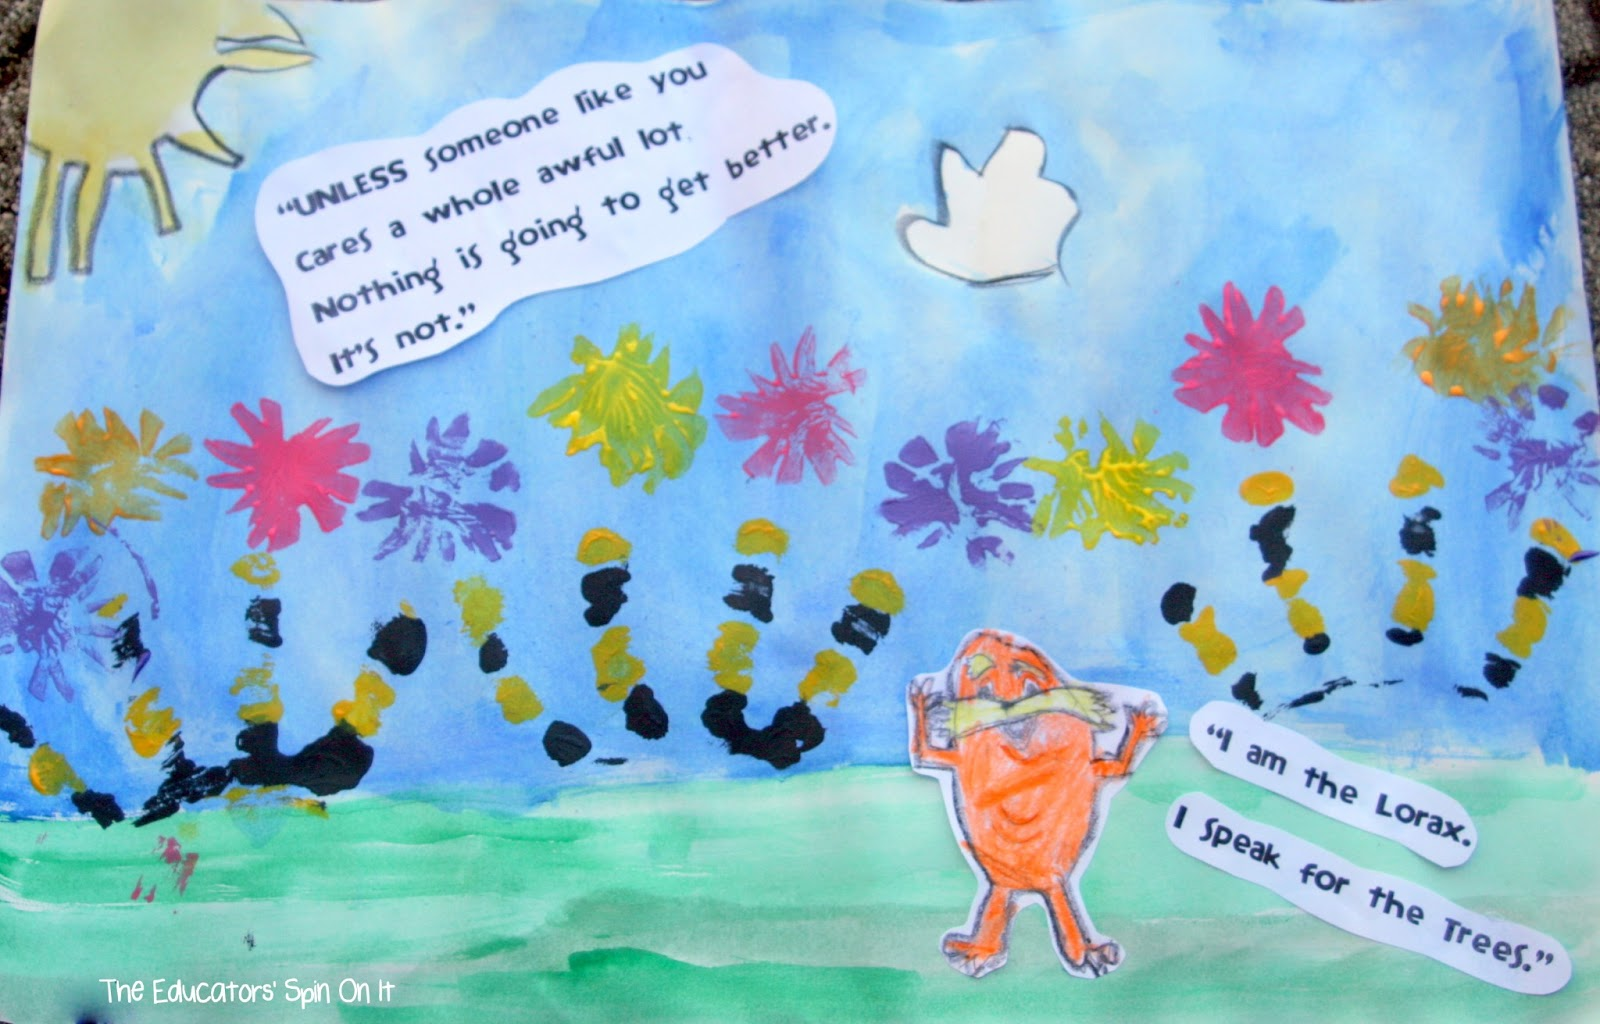 30 ways to have fun with the lorax by dr seuss the educators